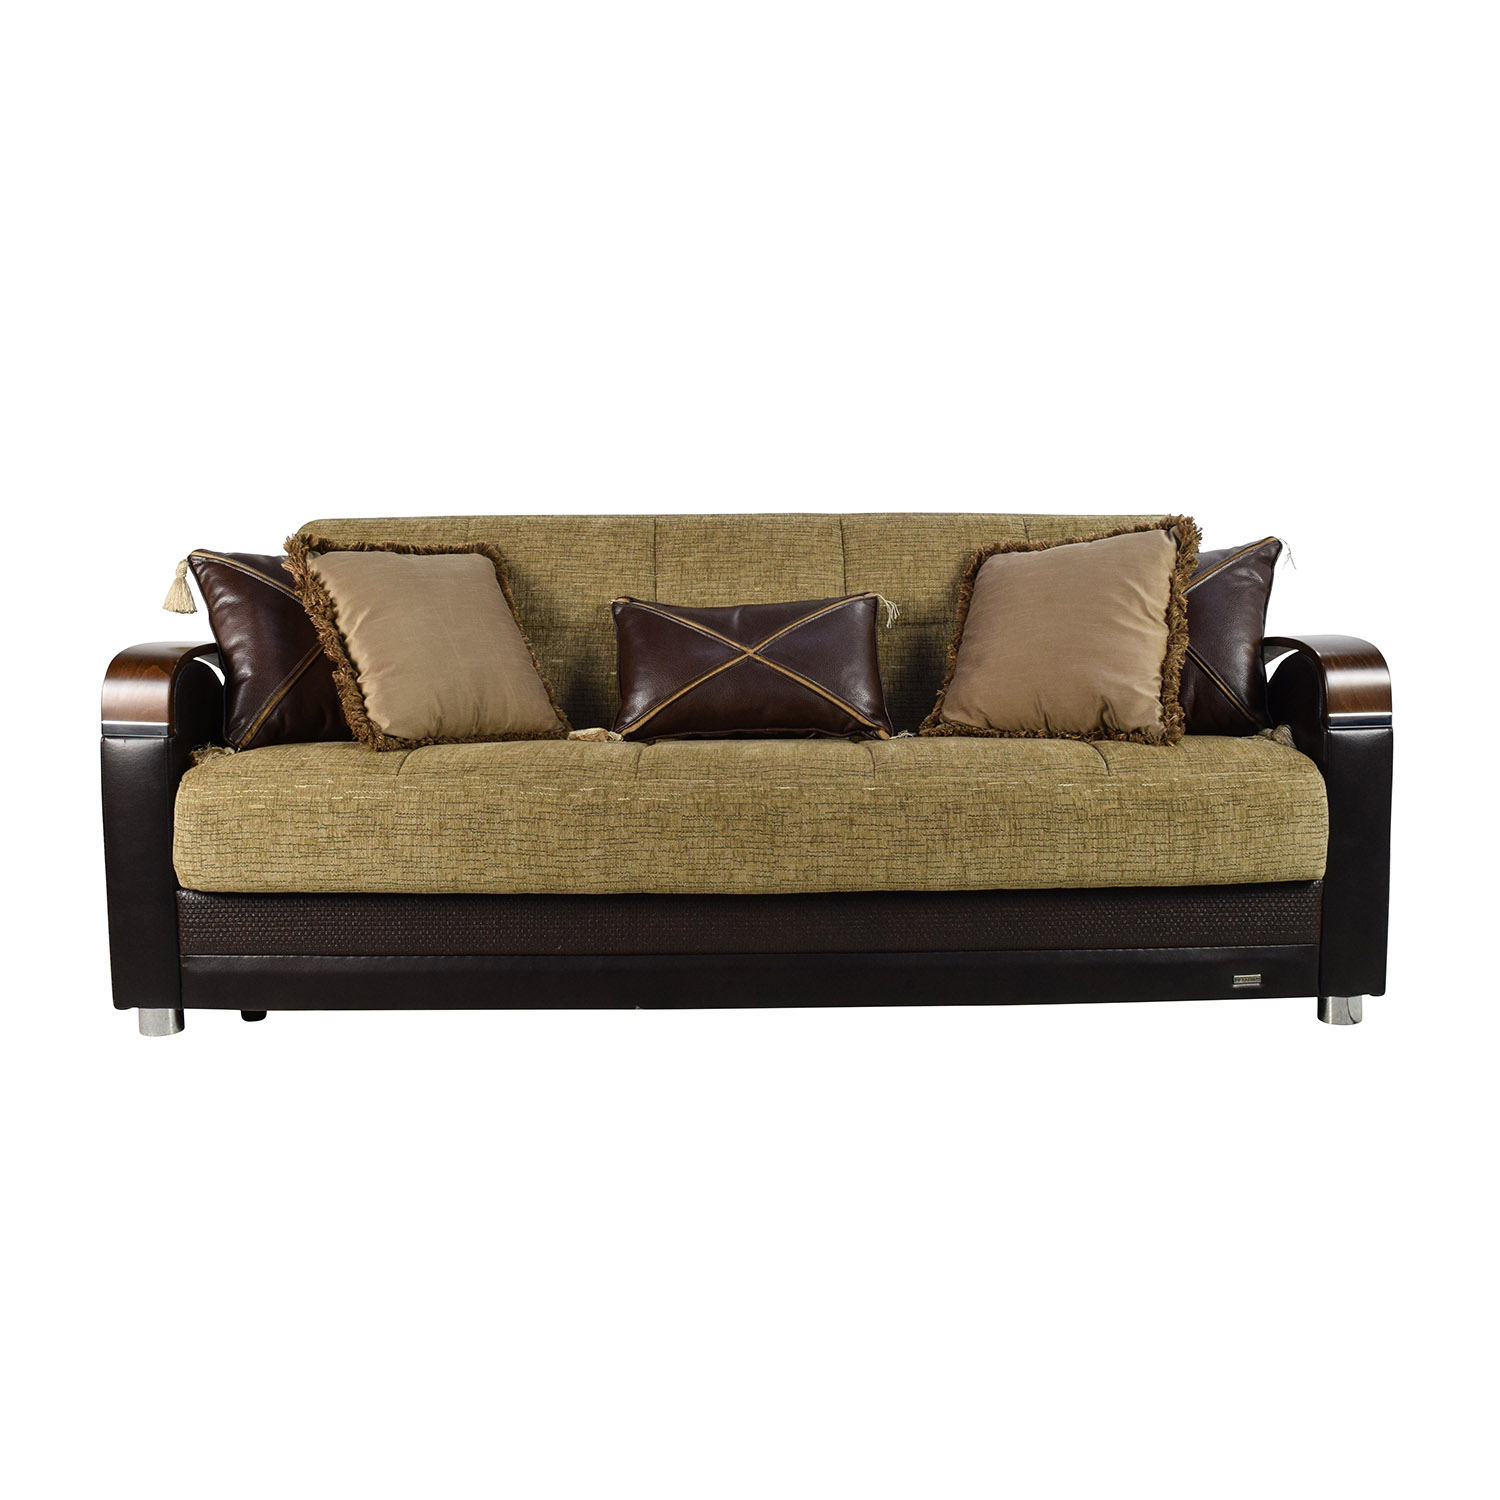 buy Bellona Luna Gold and Brown Sofa Sleeper with Pillows Bellona